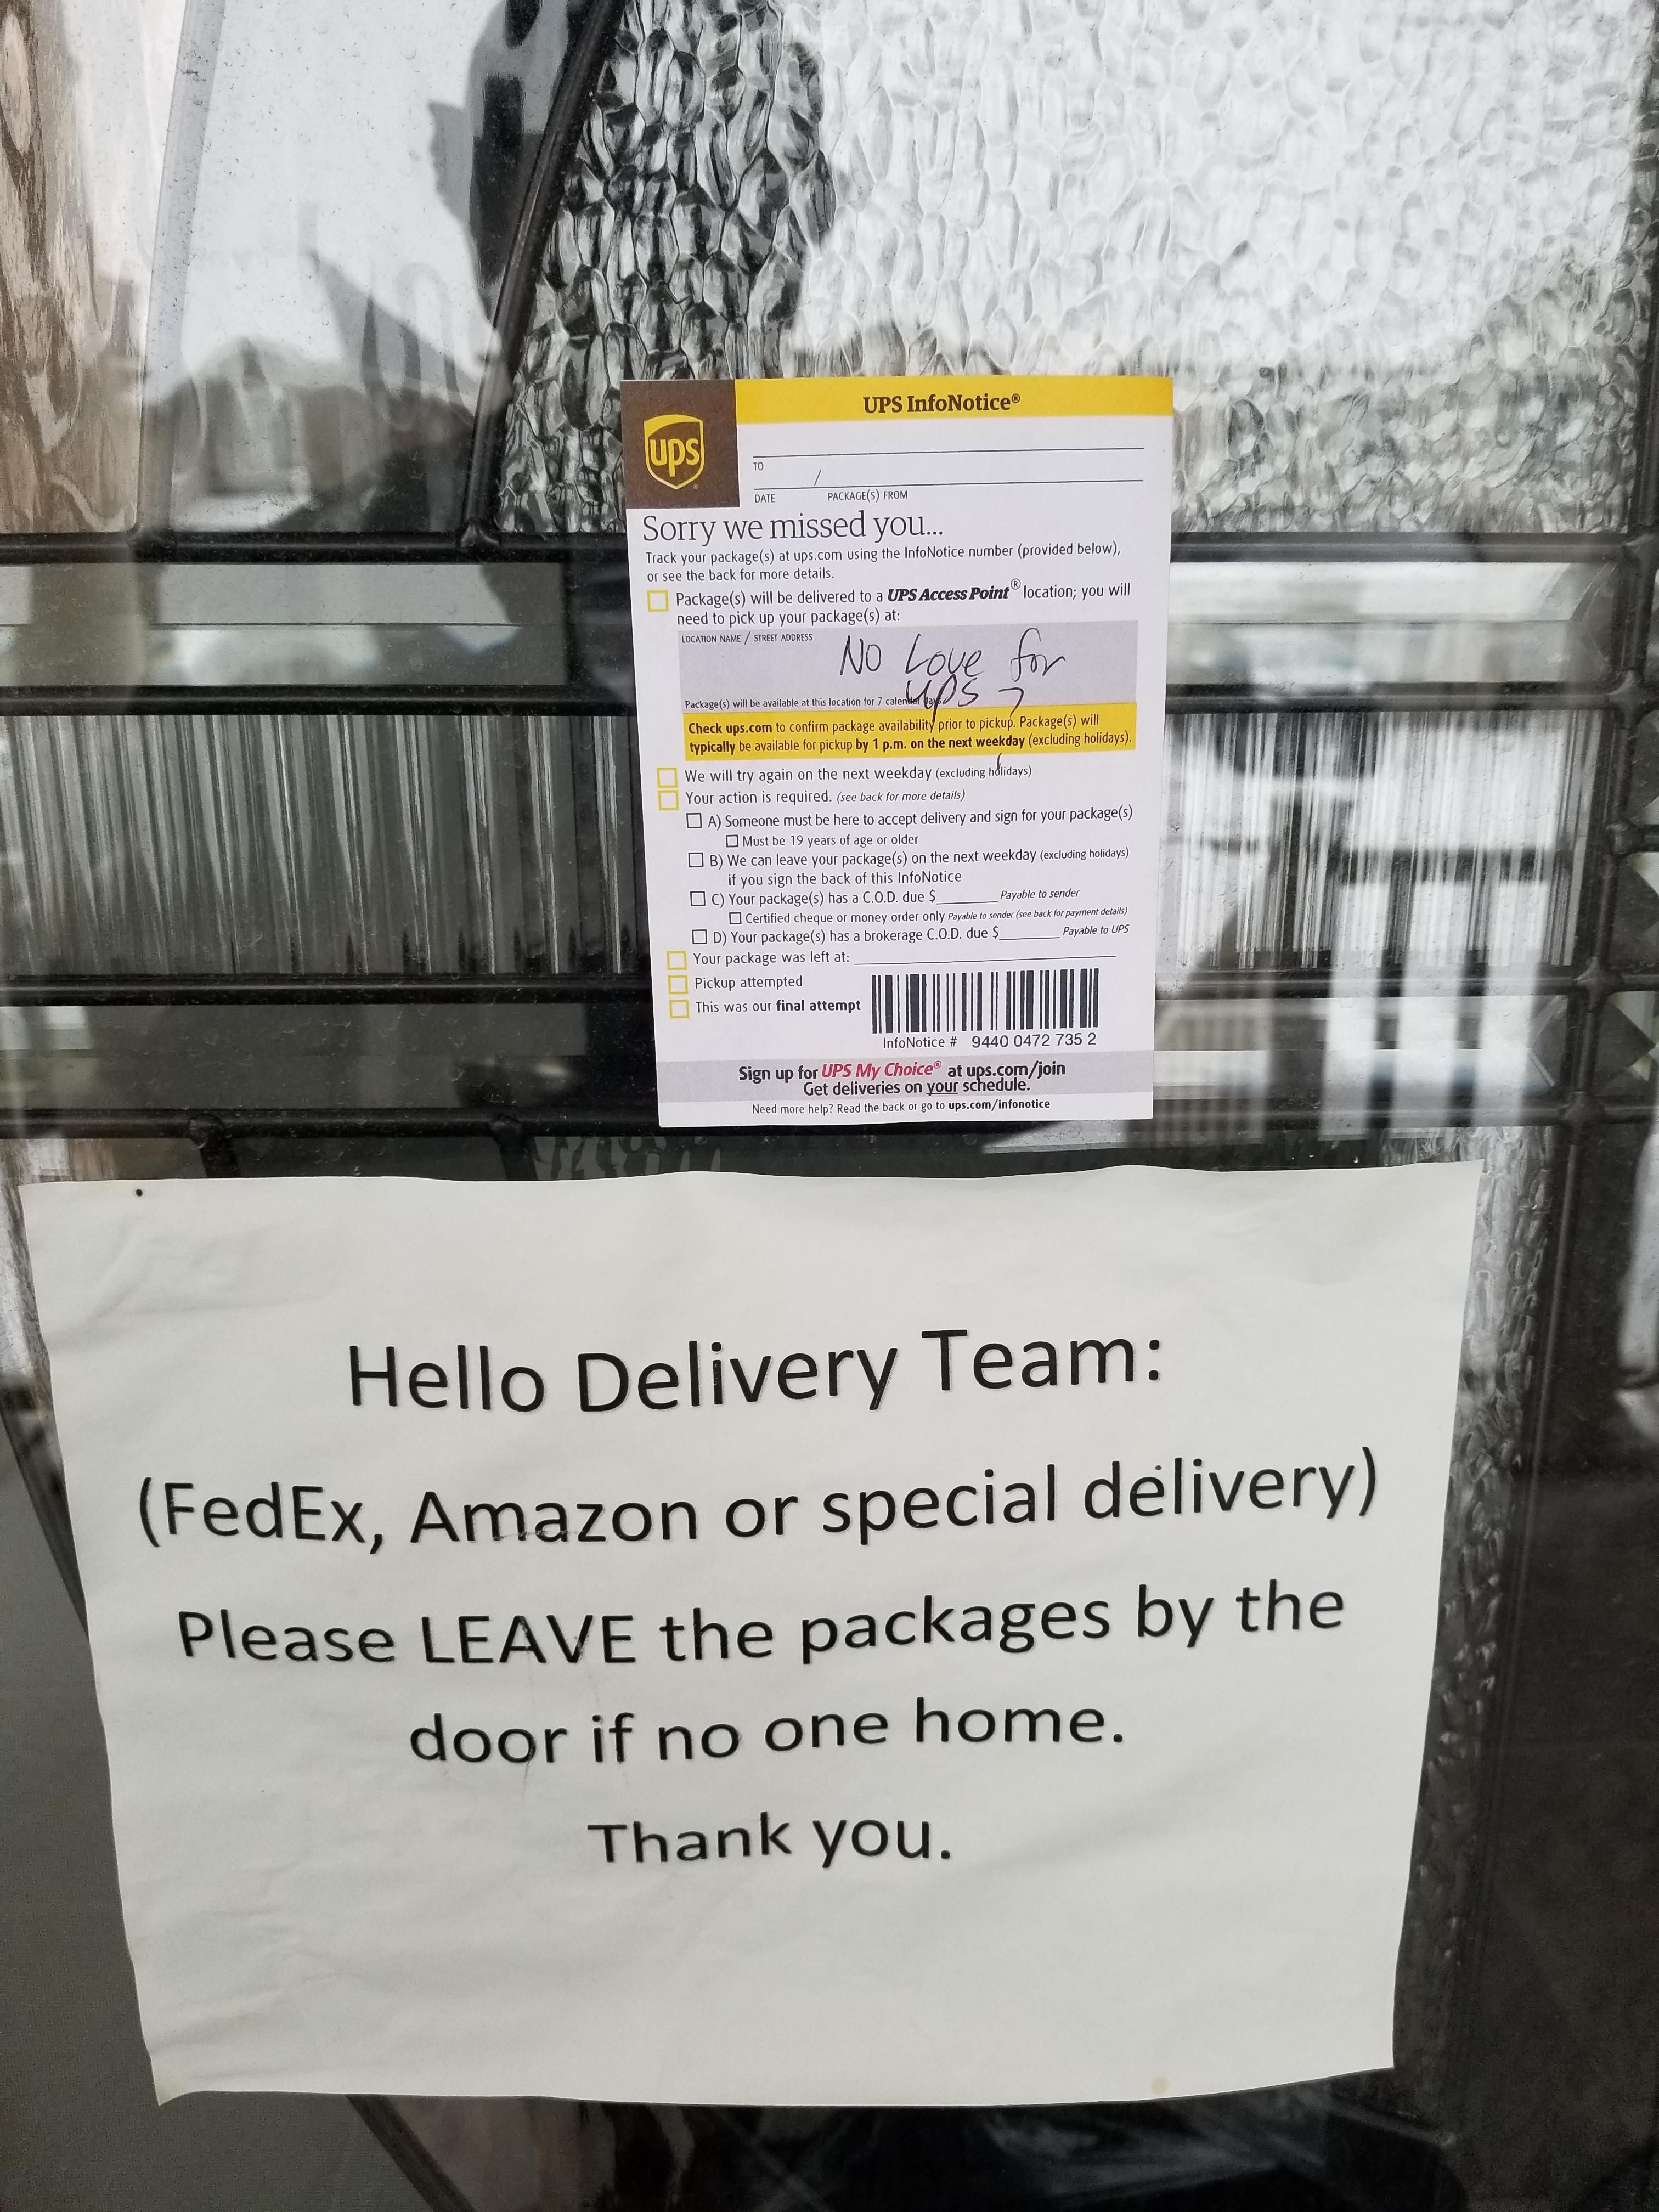 No love for UPS?